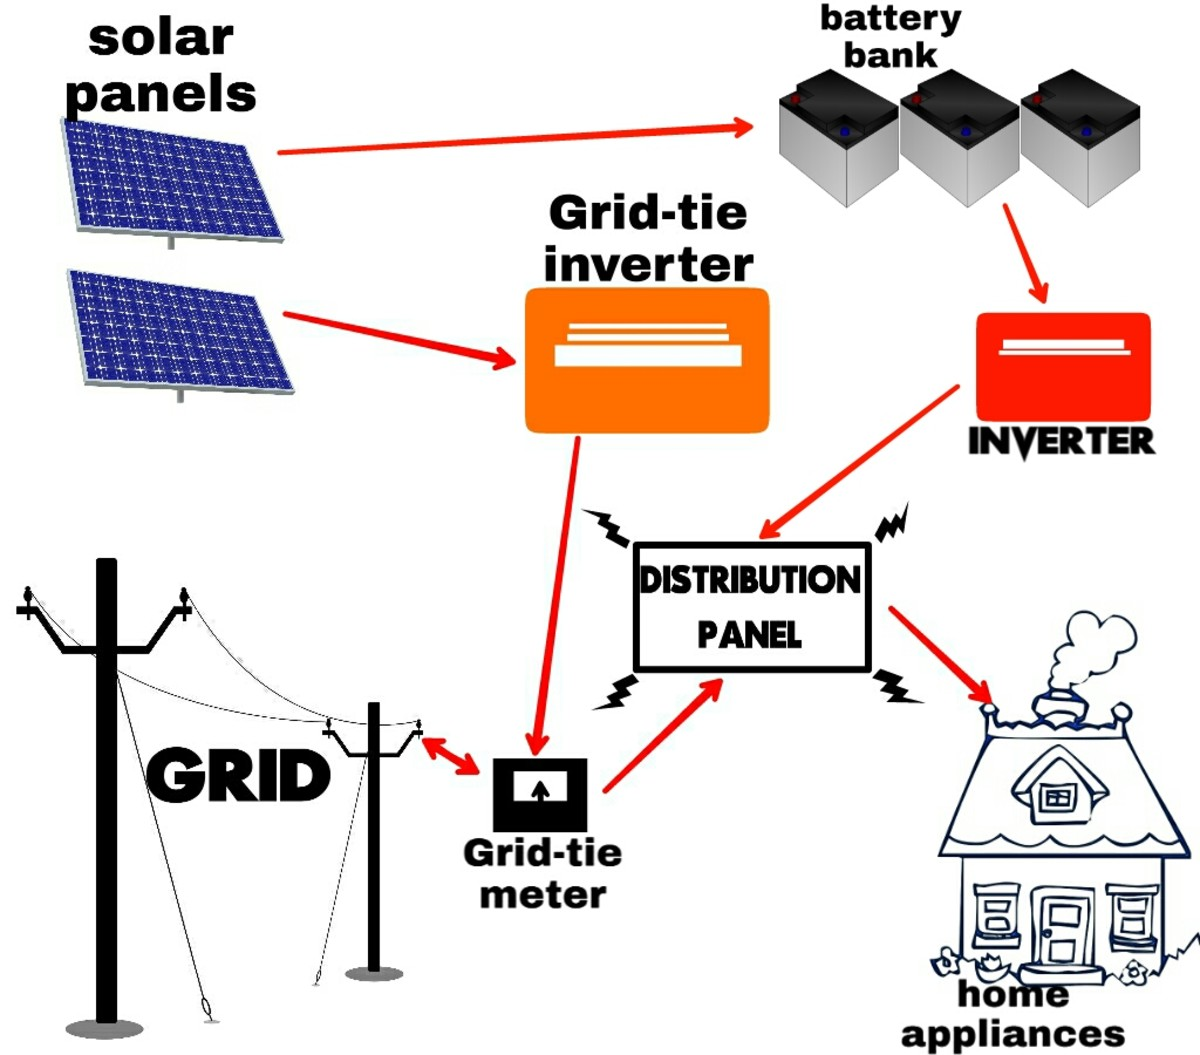 Simplified model of a Grid-interactive solar power system